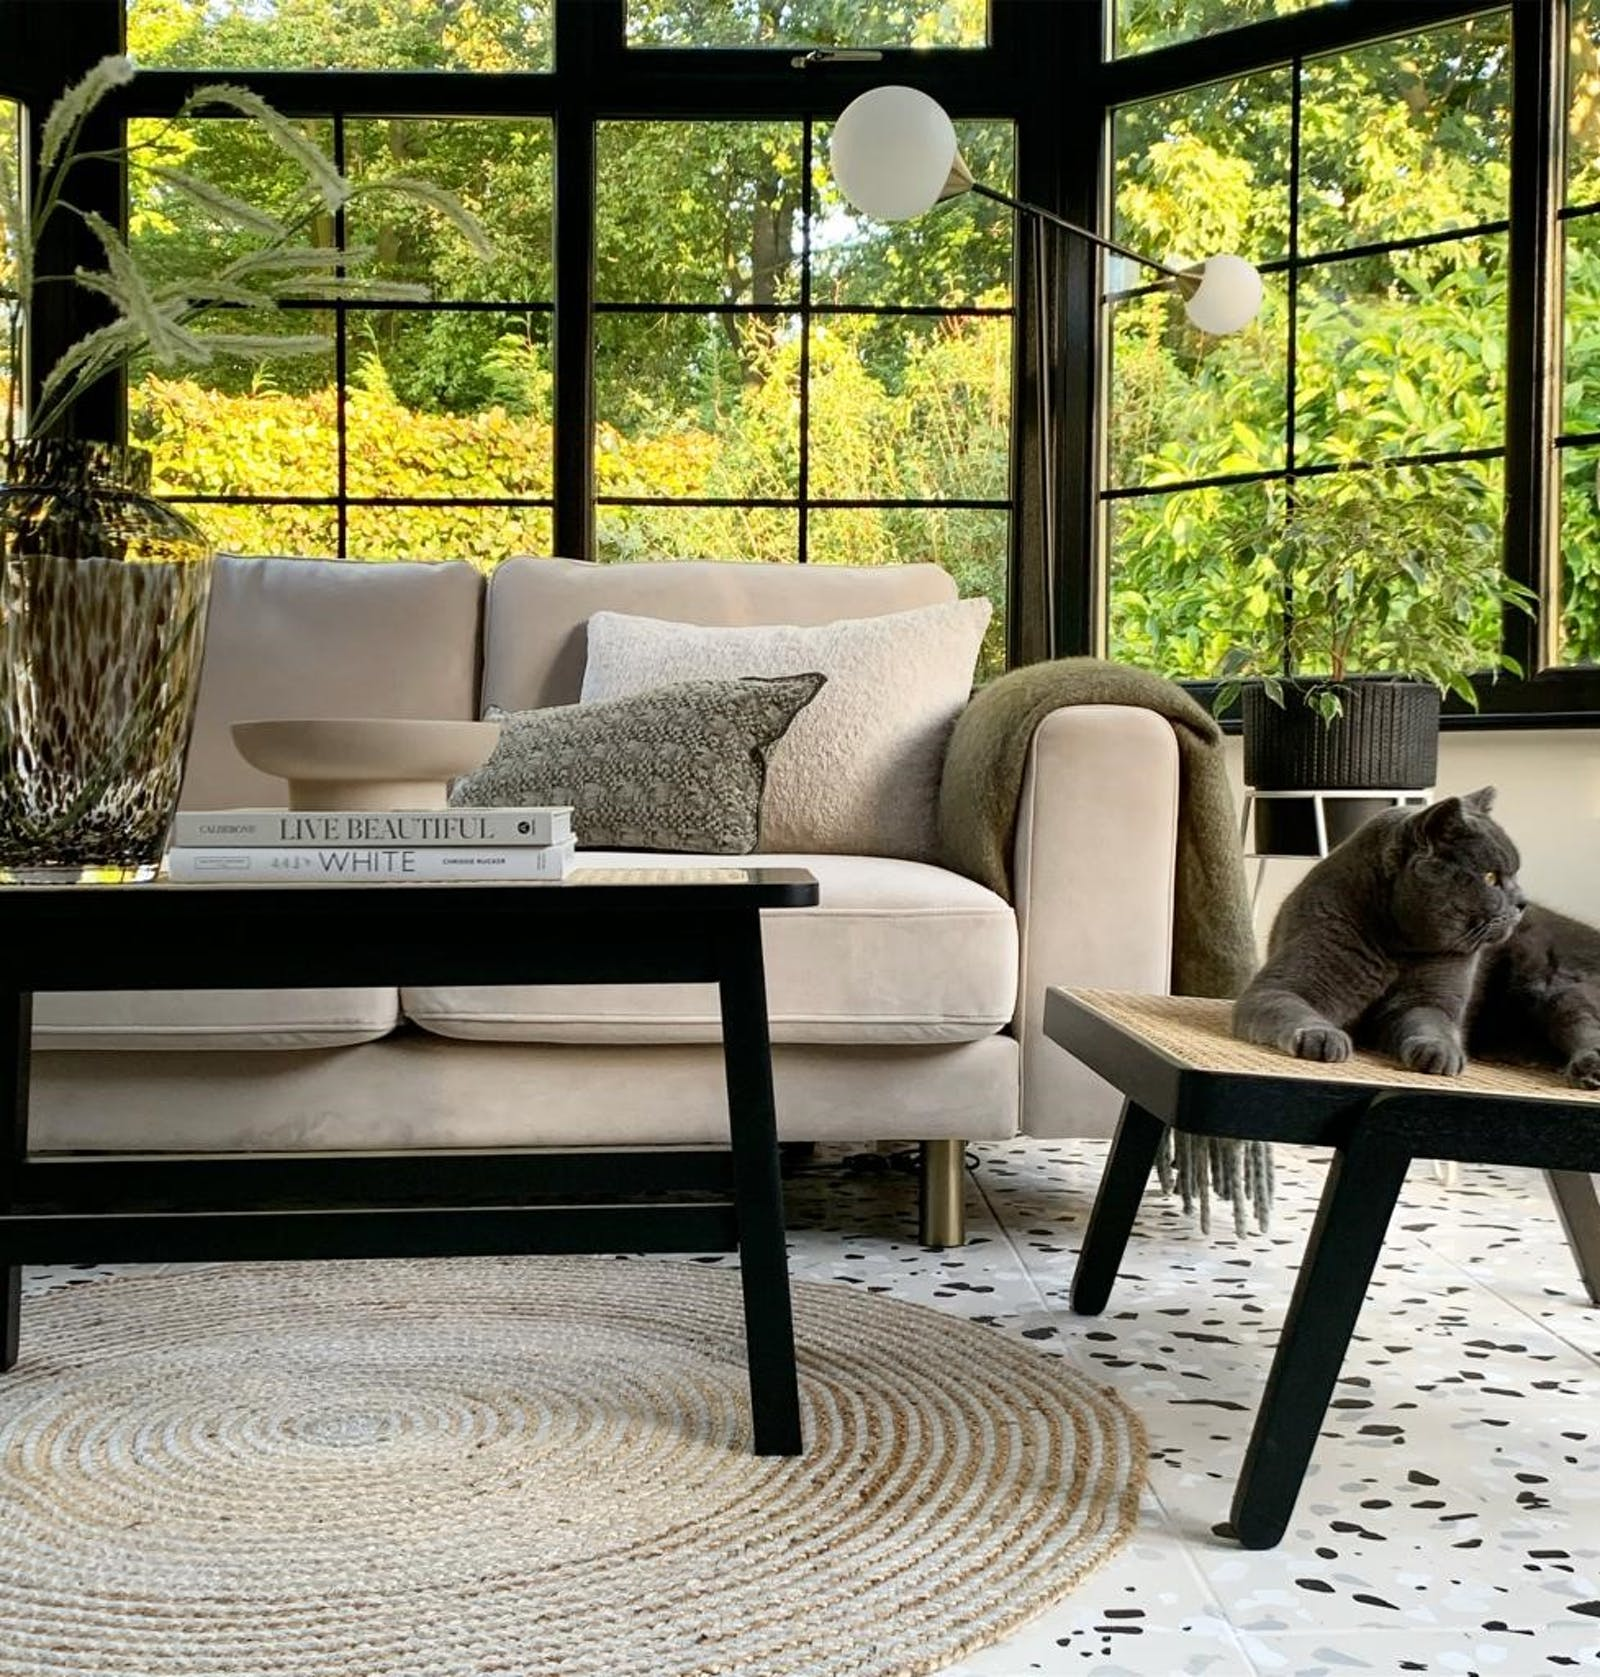 Beige sofa and rattan furniture details with cat lounging on rattan stool